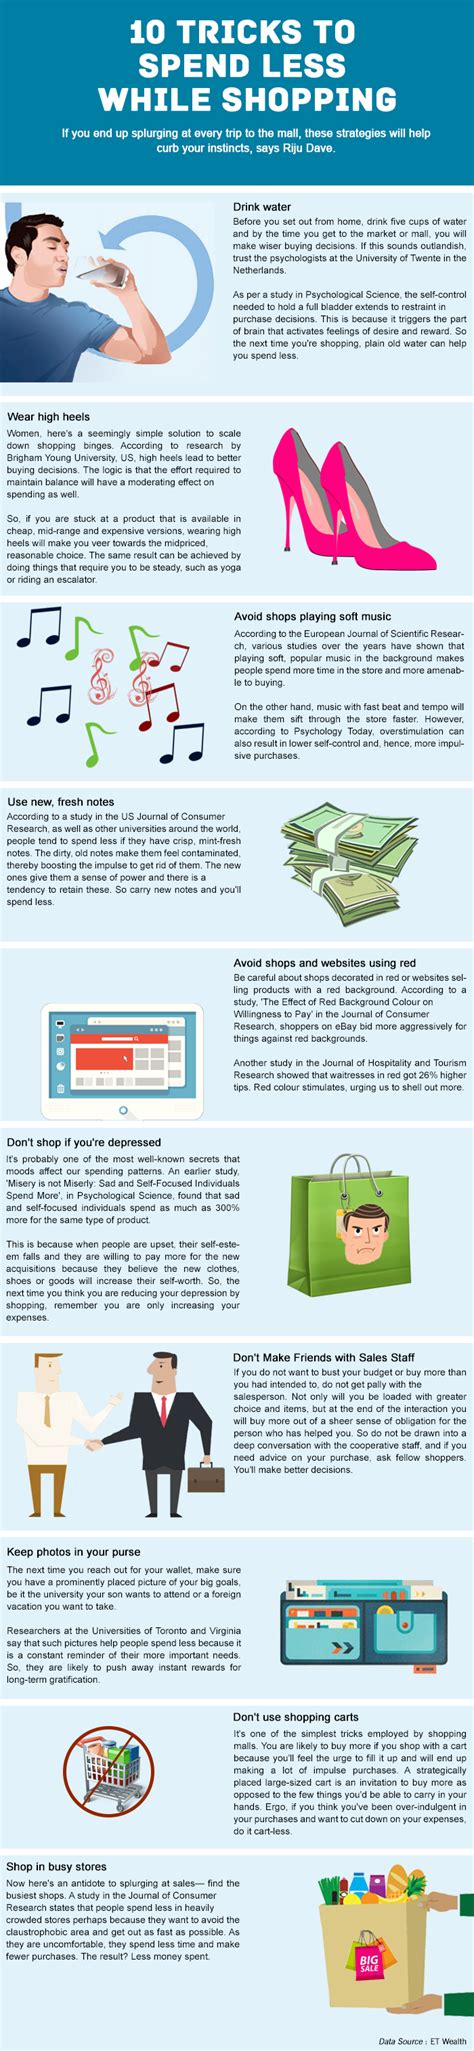 10 Tricks For Less by Tricks To Spend Less Financial Planning Moneyfrog In